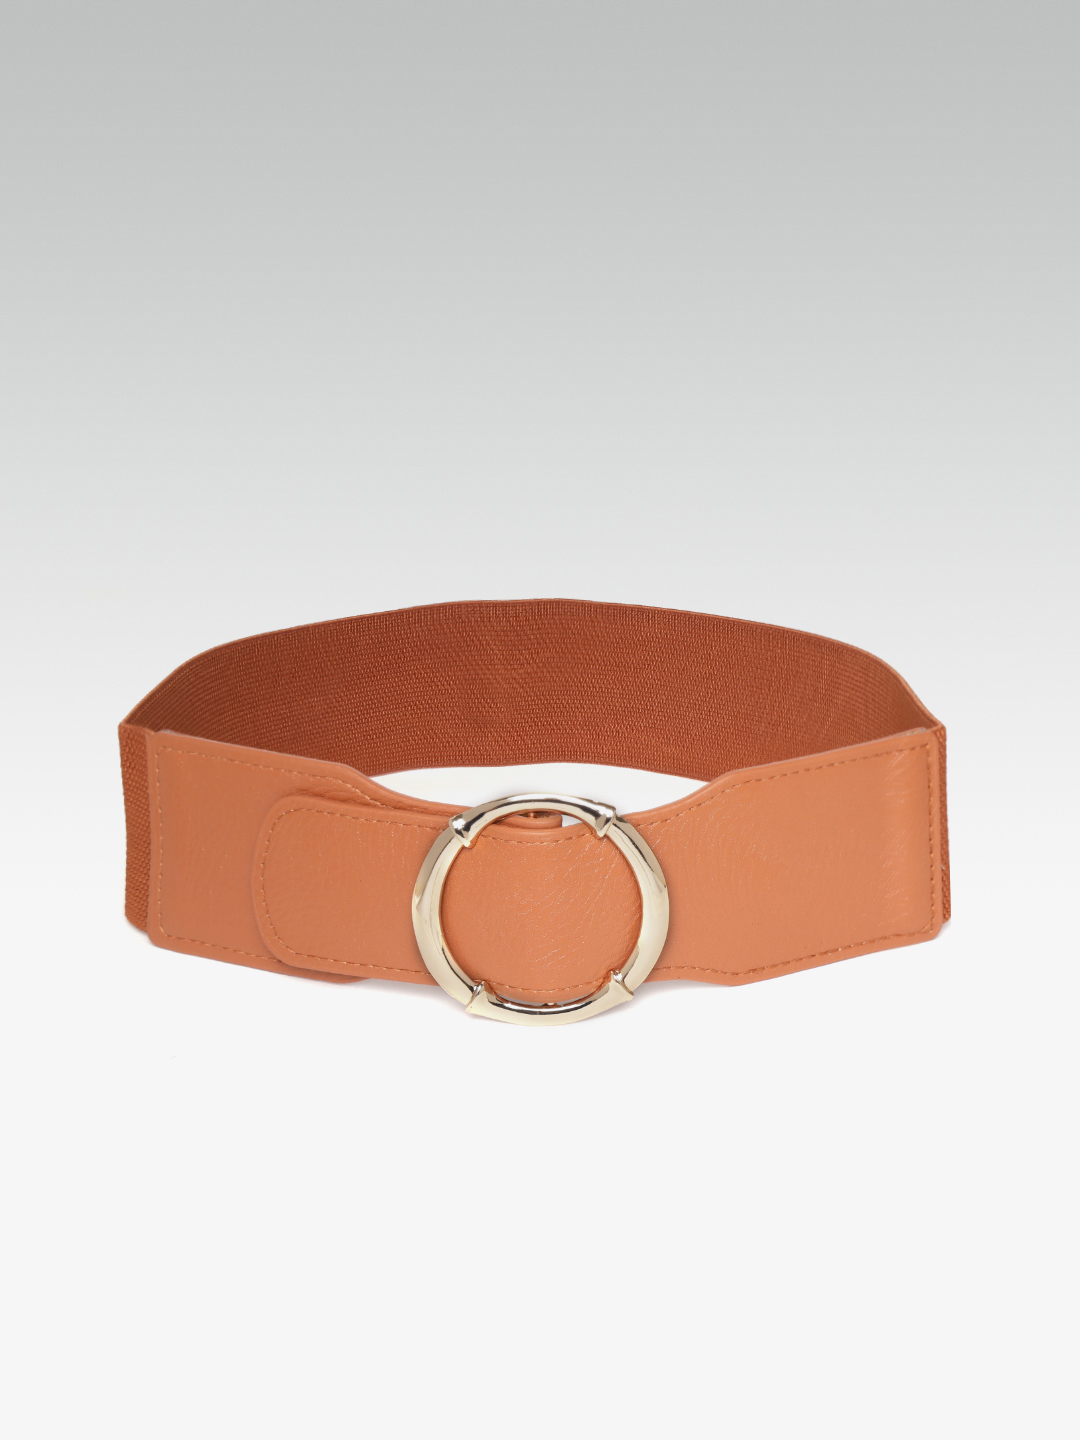 Belts-Brown Stay In Our Circle Waist Belt2